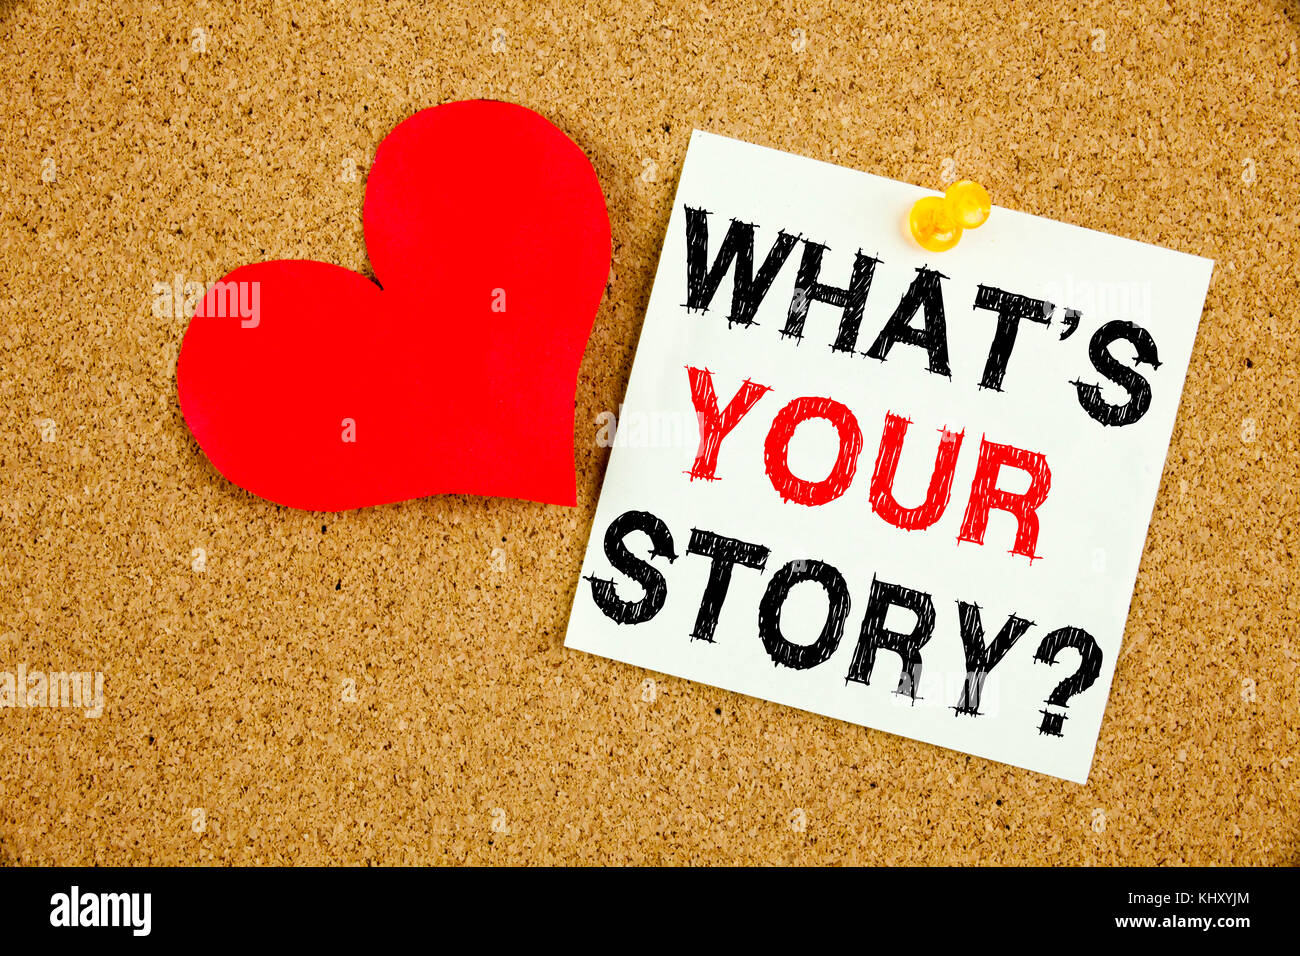 Conceptual hand writing text caption inspiration showing Question What Is Your Story concept for Share Storytelling - Stock Image